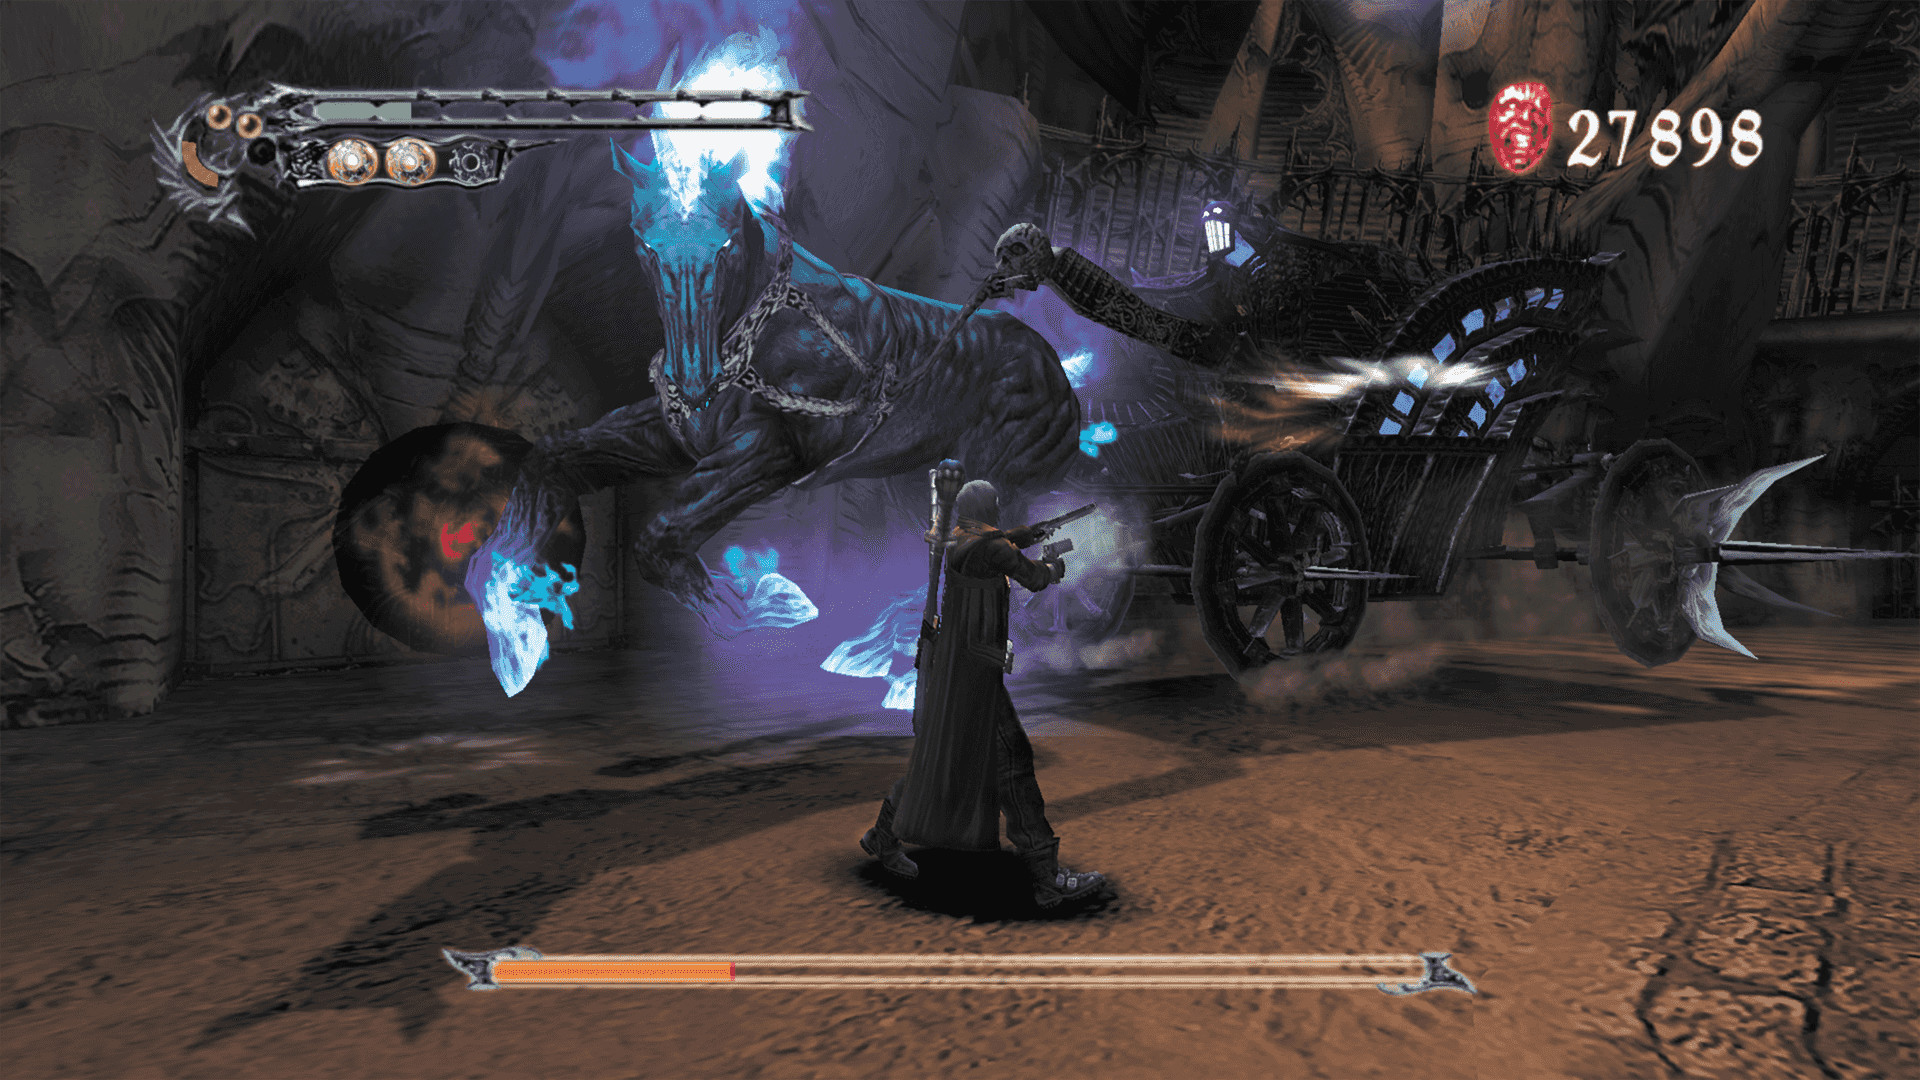 Download devil may cry 2 for android 140mb highly compressed 2018.